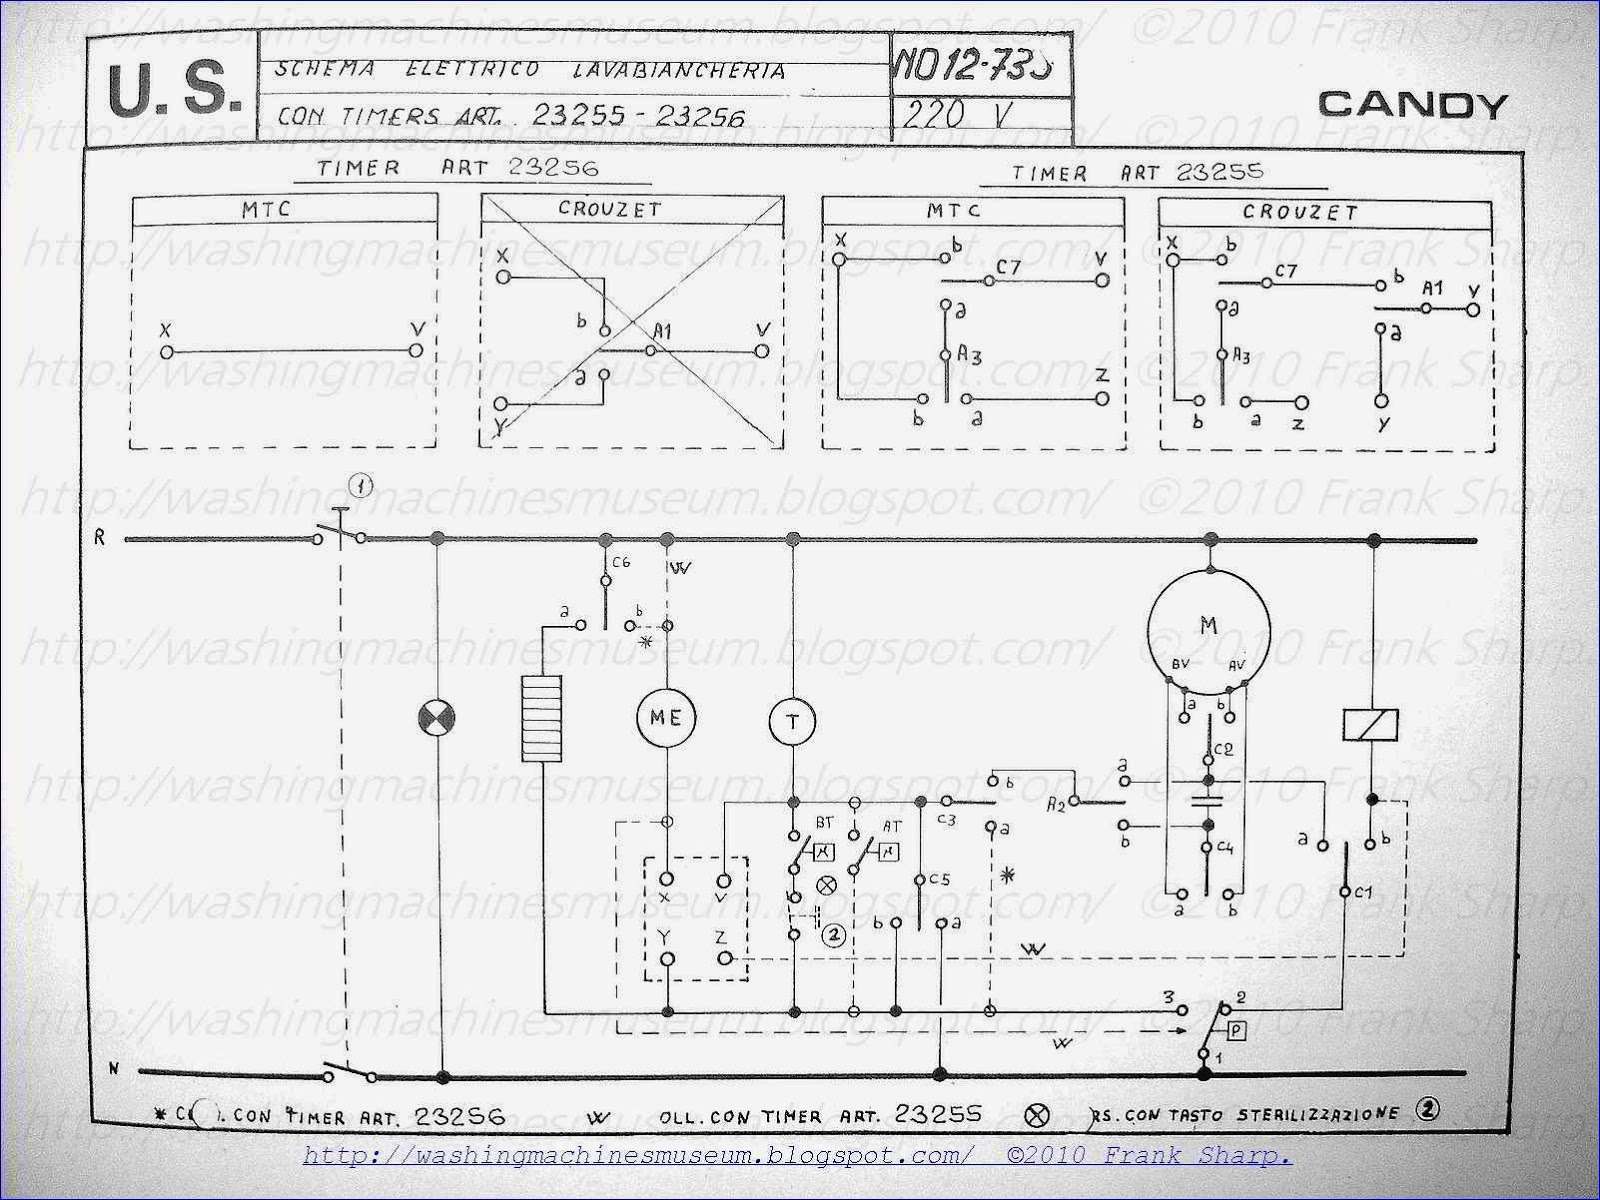 Whirlpool Senseon Dryer Wiring Diagram Calypso Troubleshooting